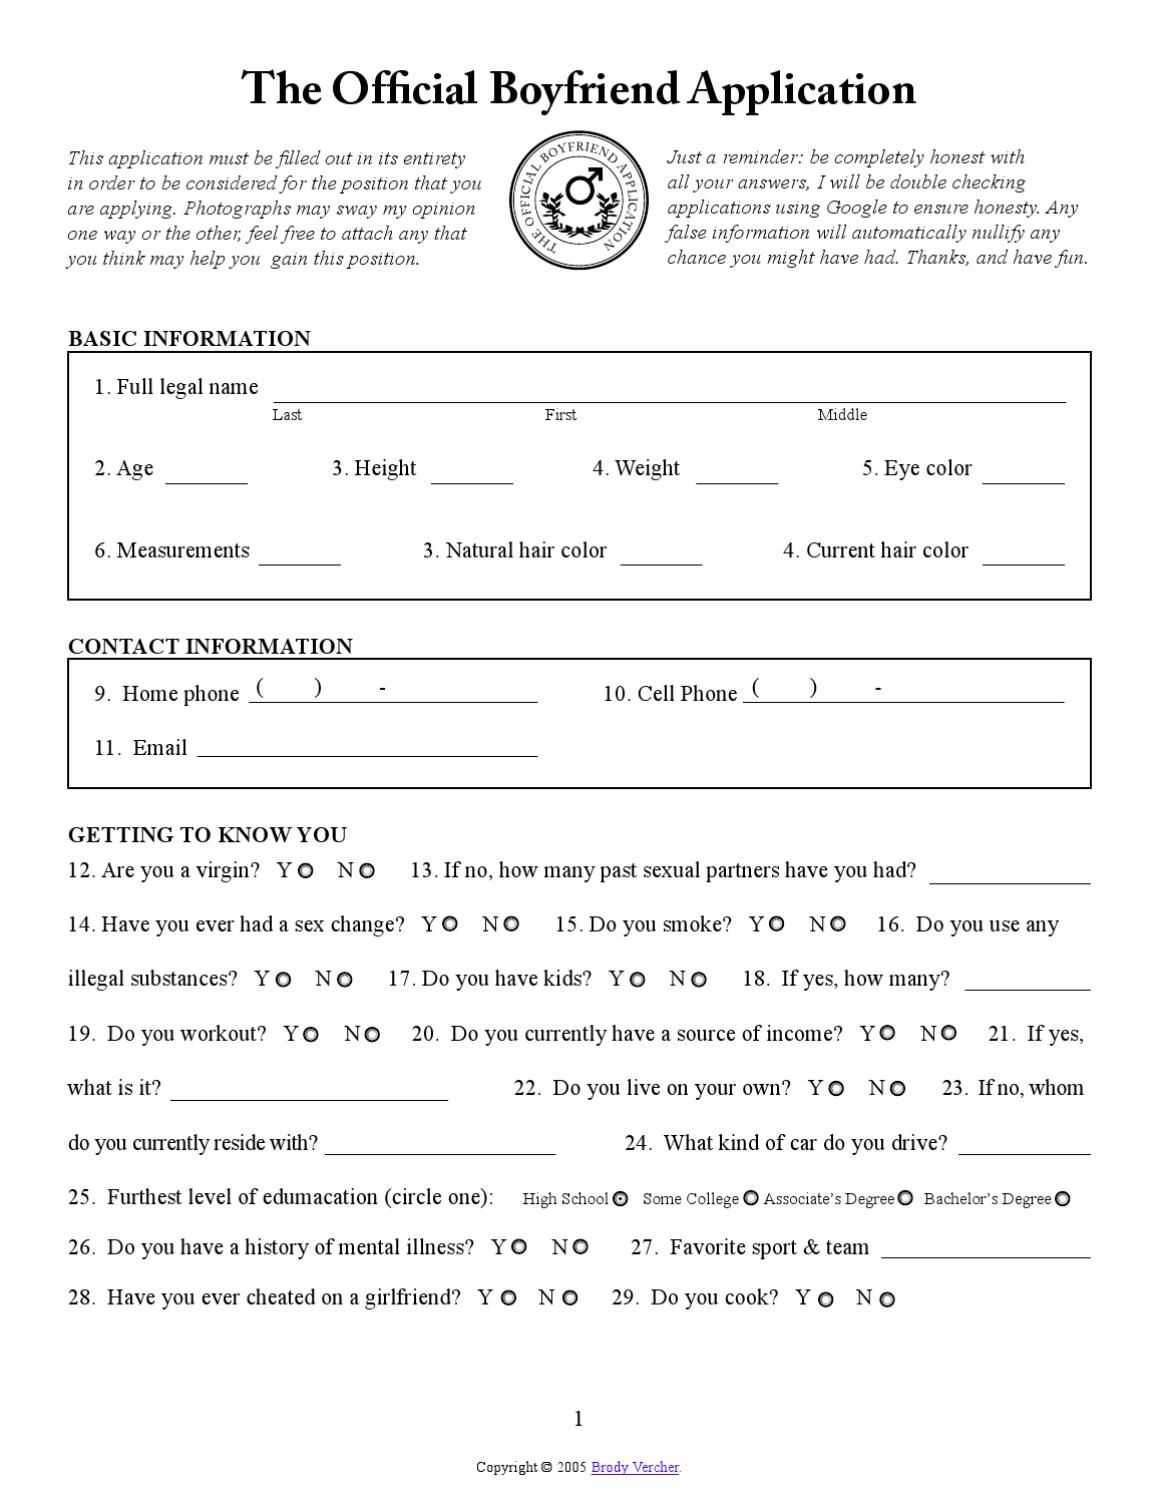 Date Night Request Forms